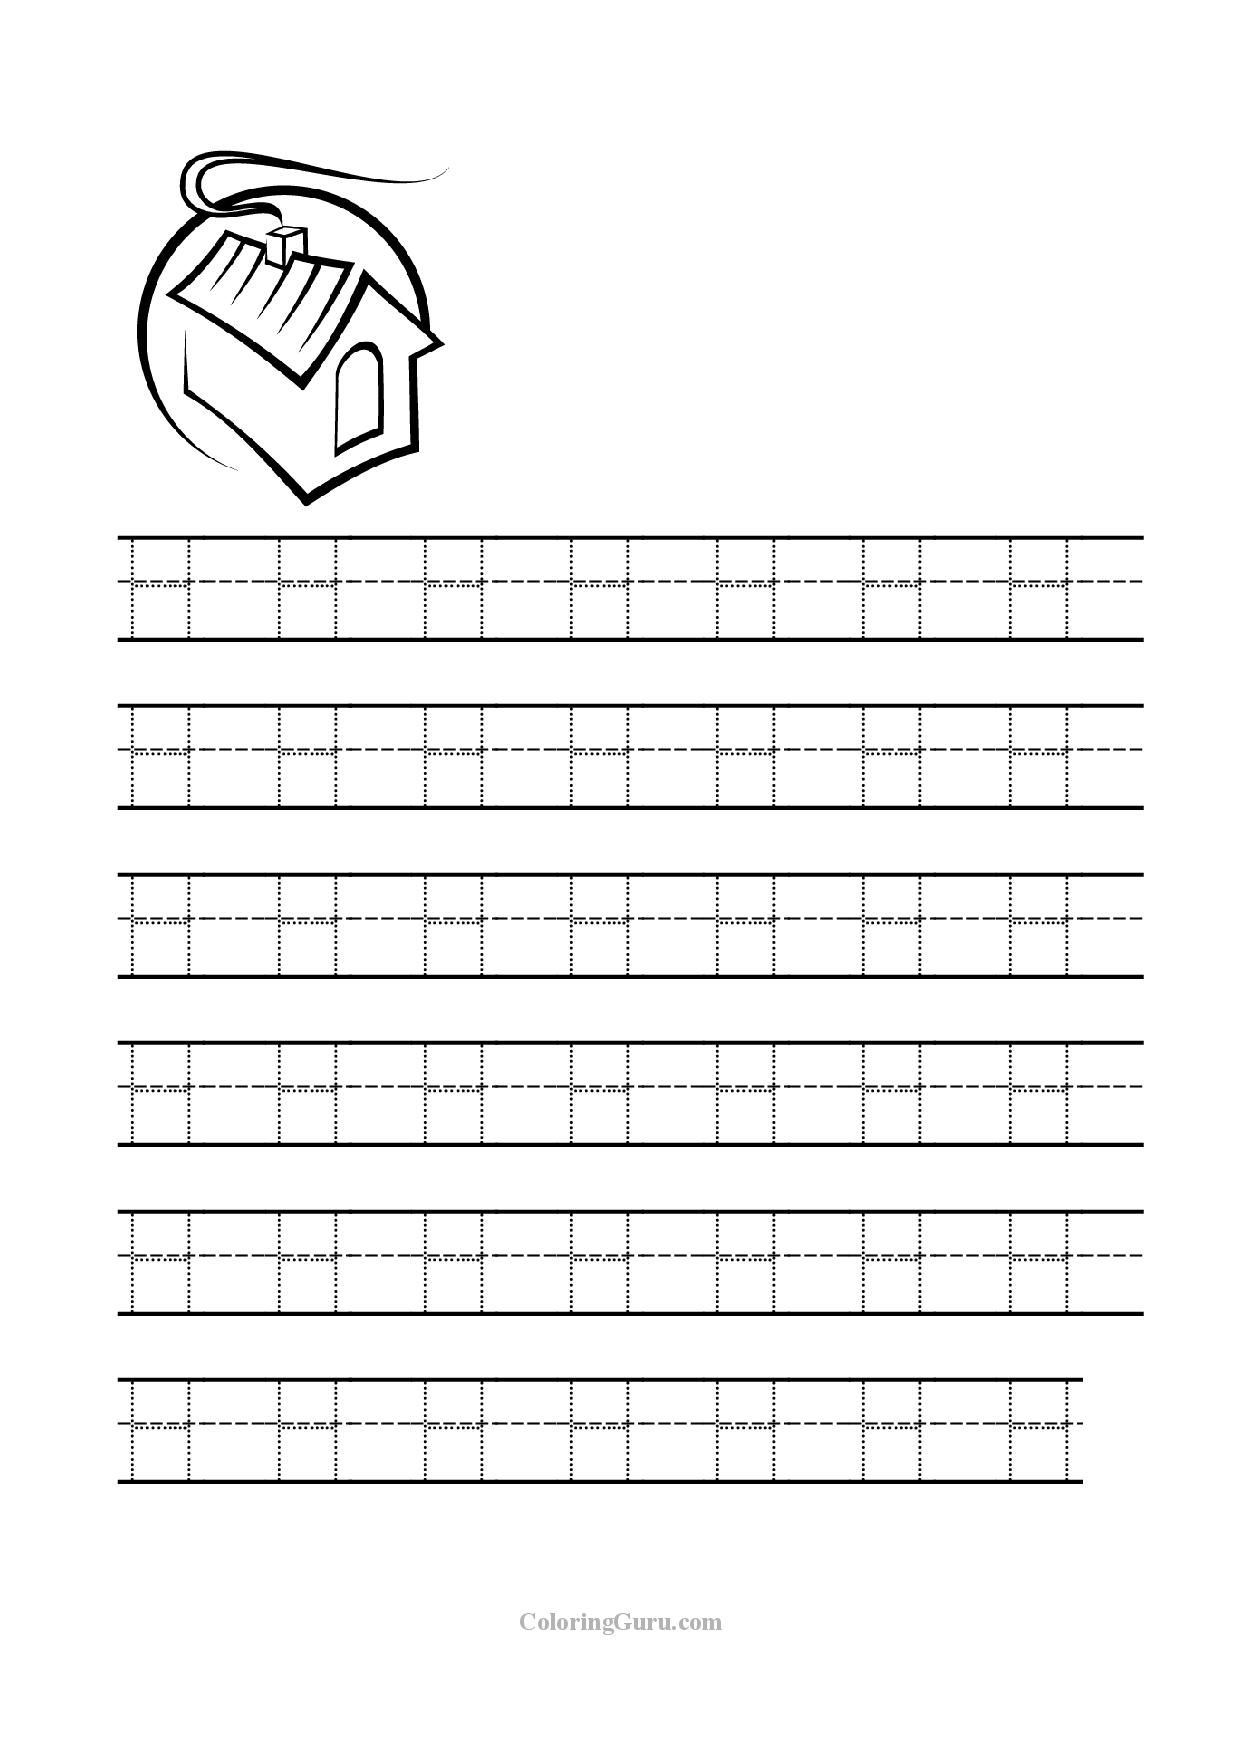 Horse Tracing Worksheet